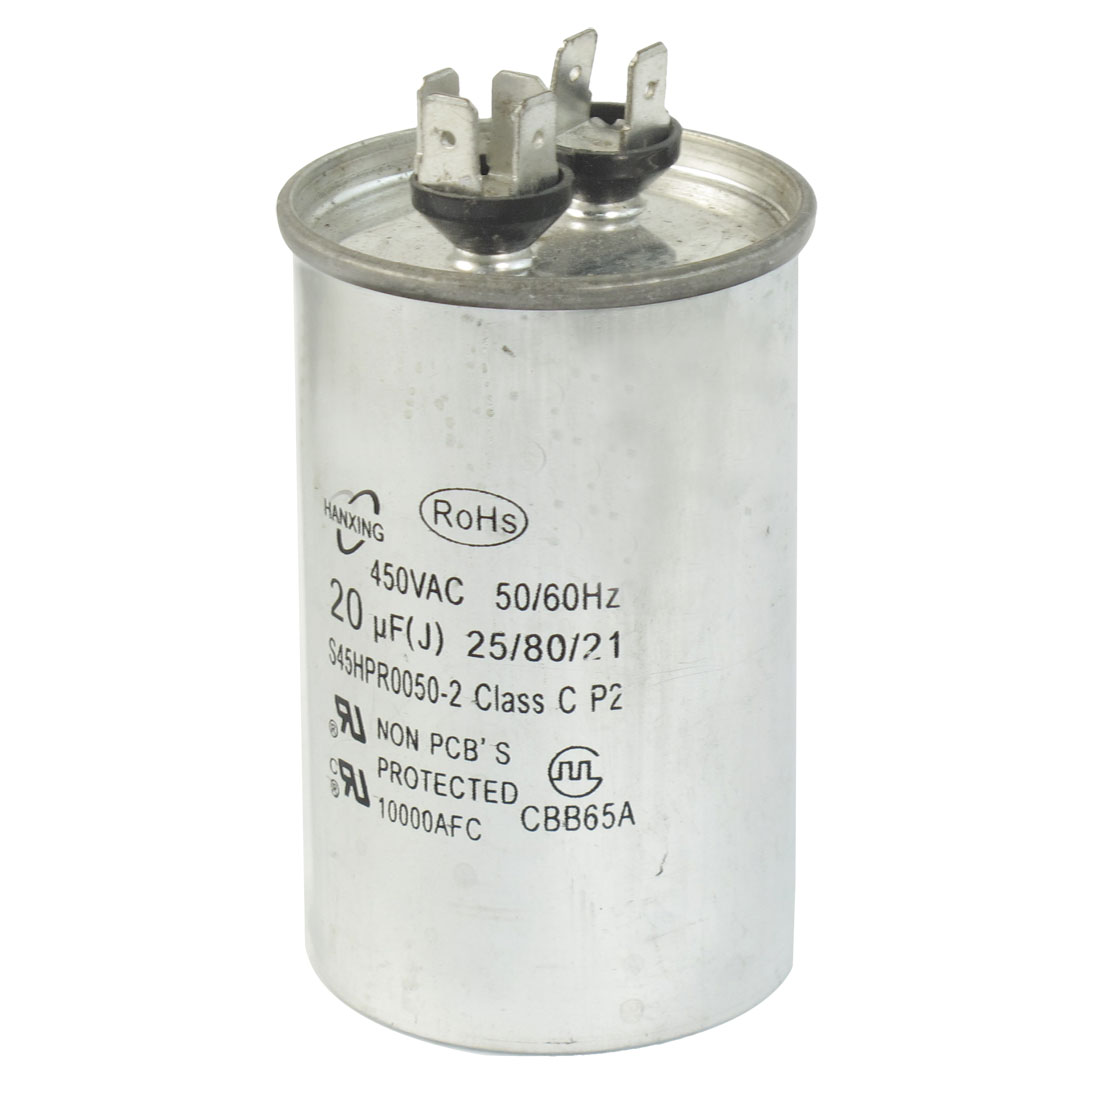 CBB65A AC 450V 20uF Non Polar Air Conditioner Motor Capacitor